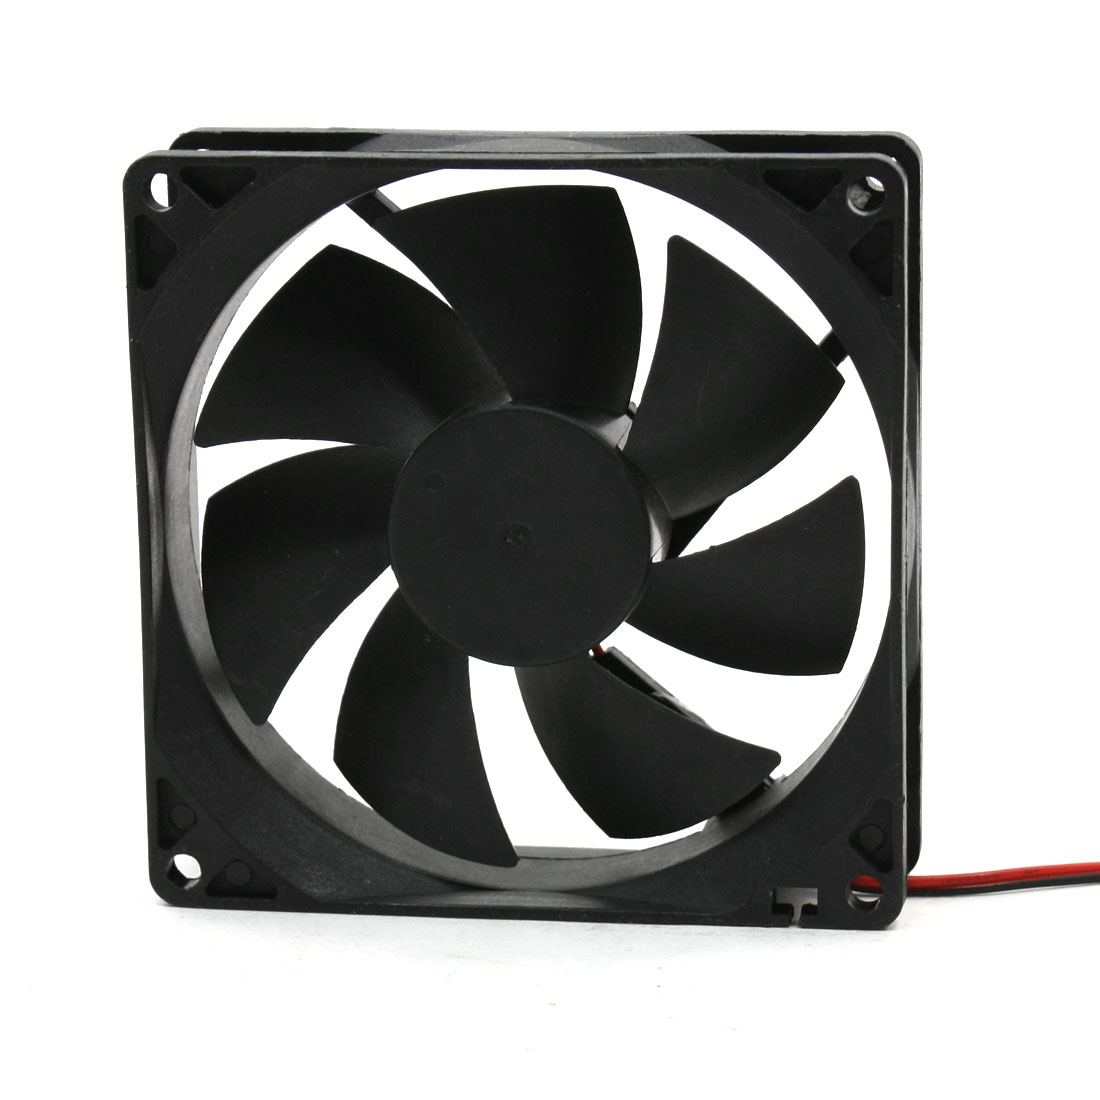 DC 24V 90mm Width 25mm Thick Axial Cooling Fan Industrial Blower